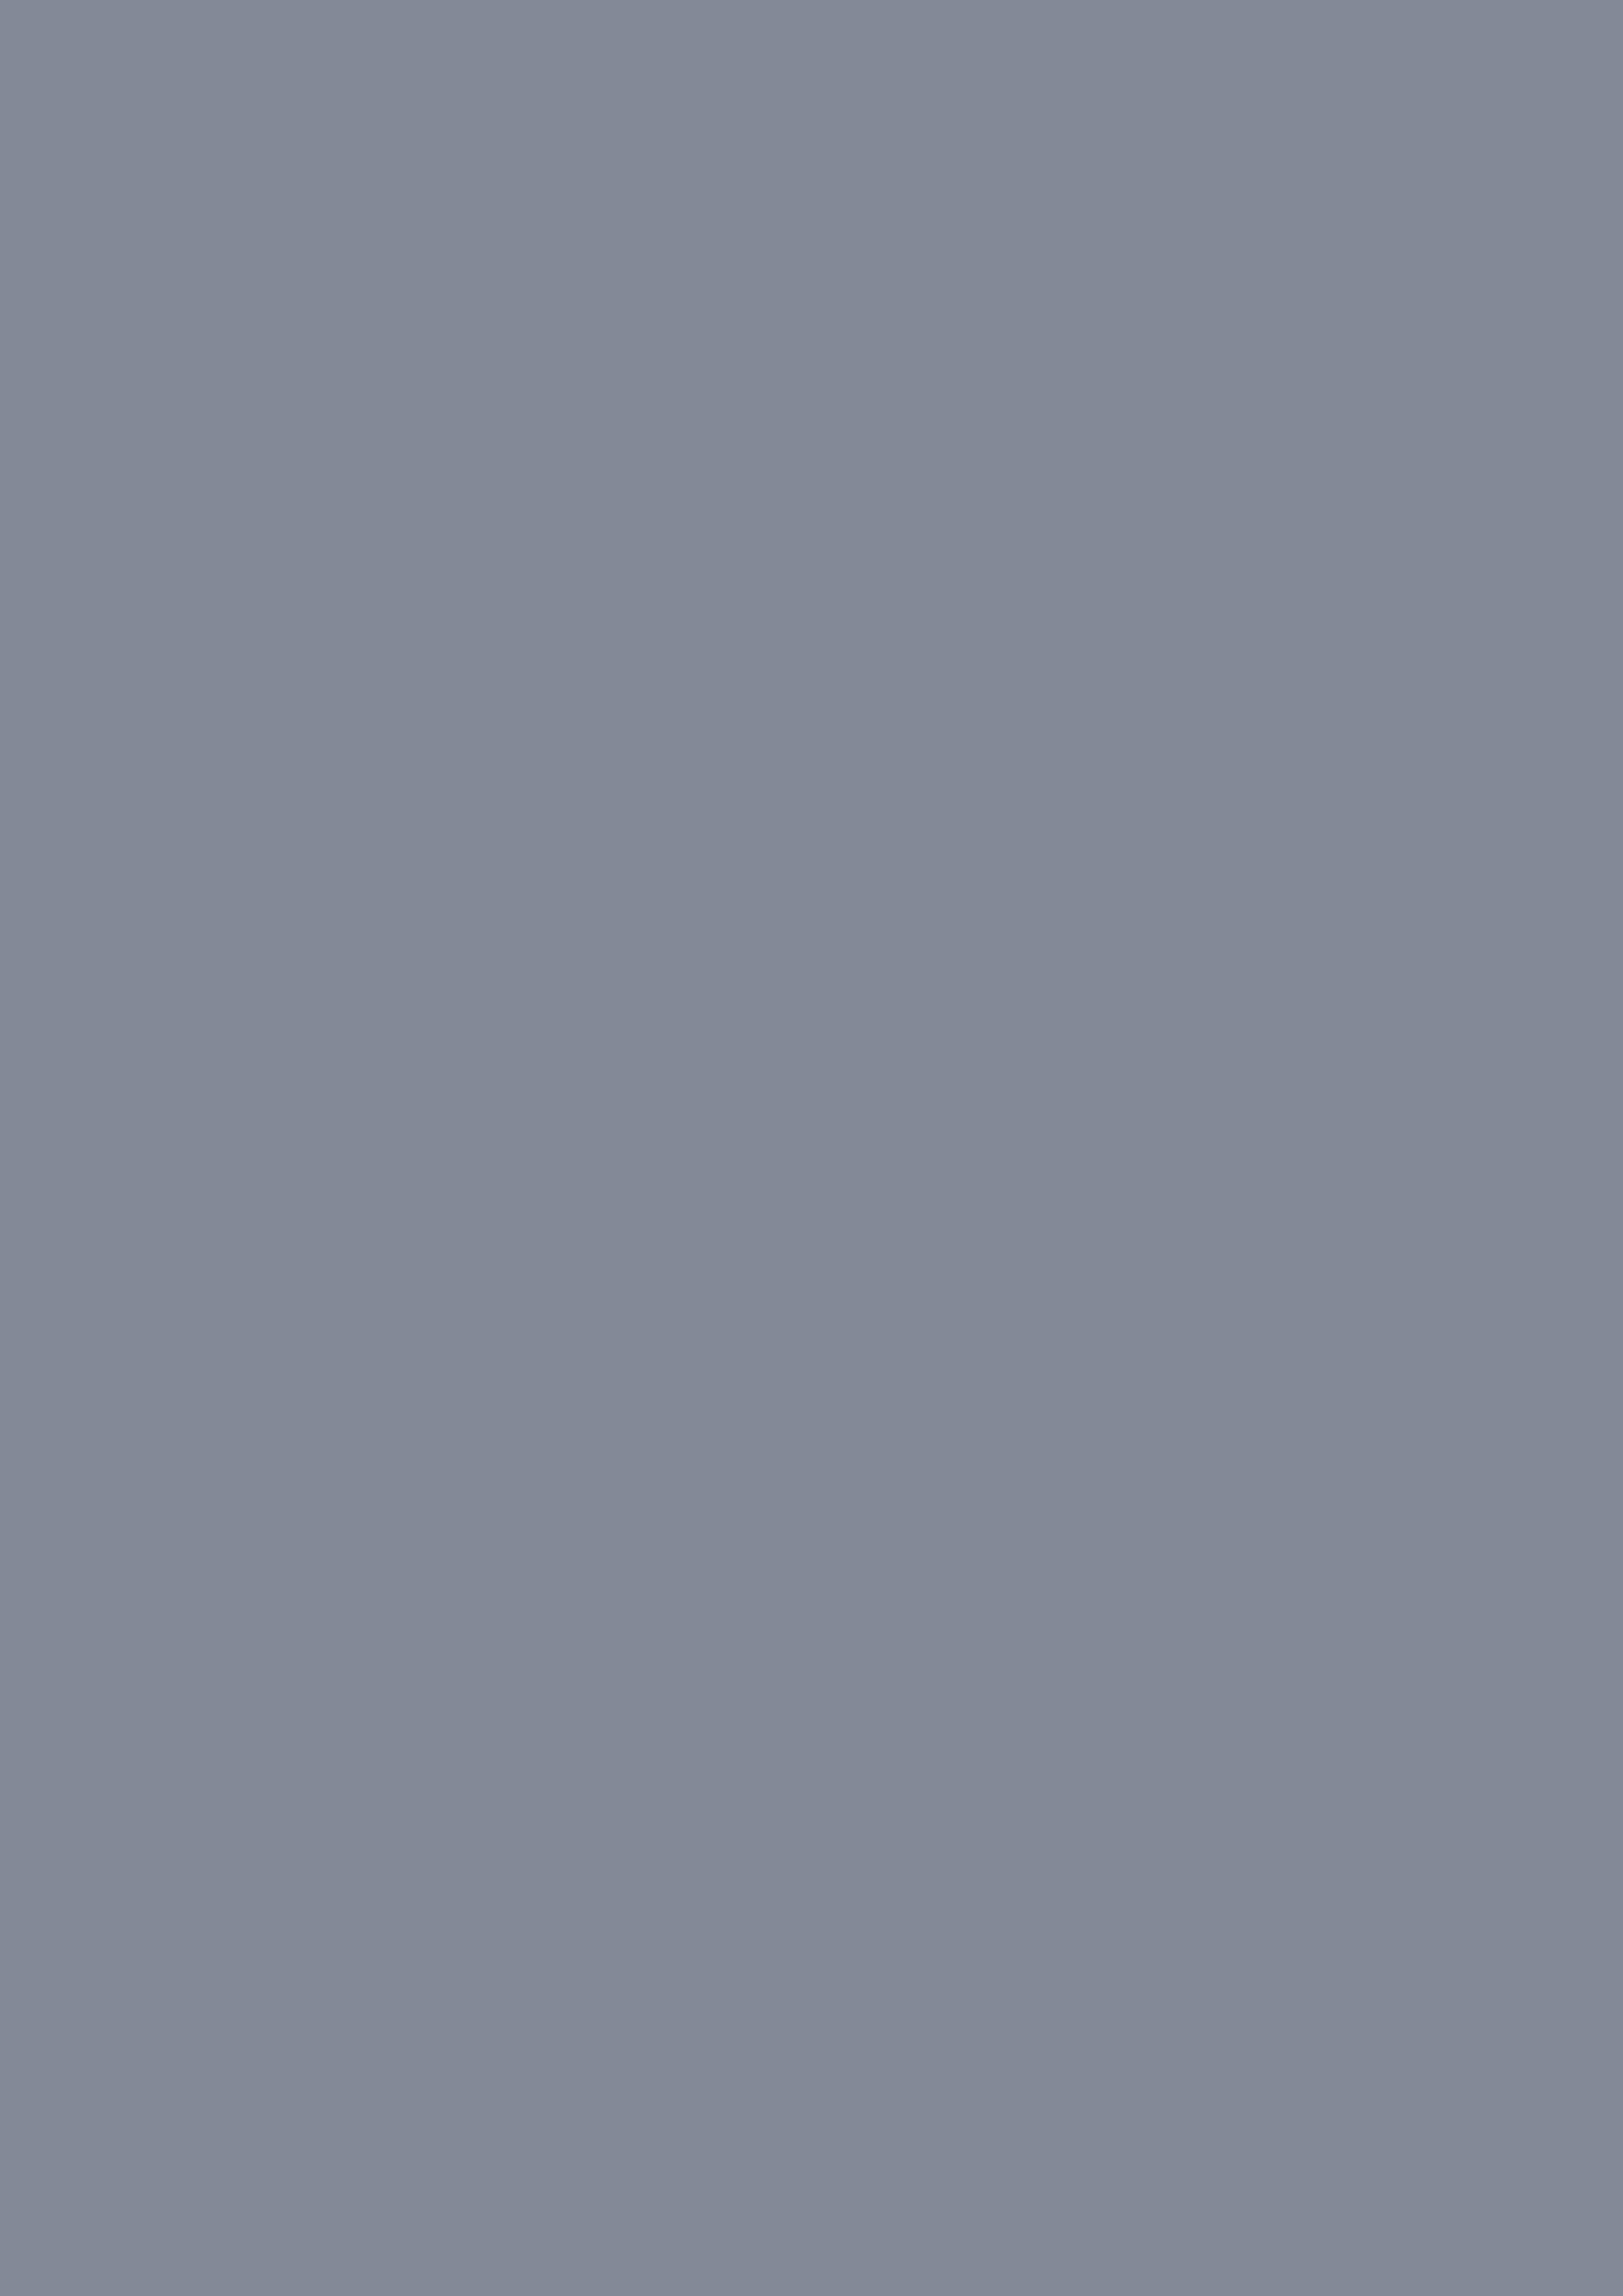 2480x3508 Roman Silver Solid Color Background